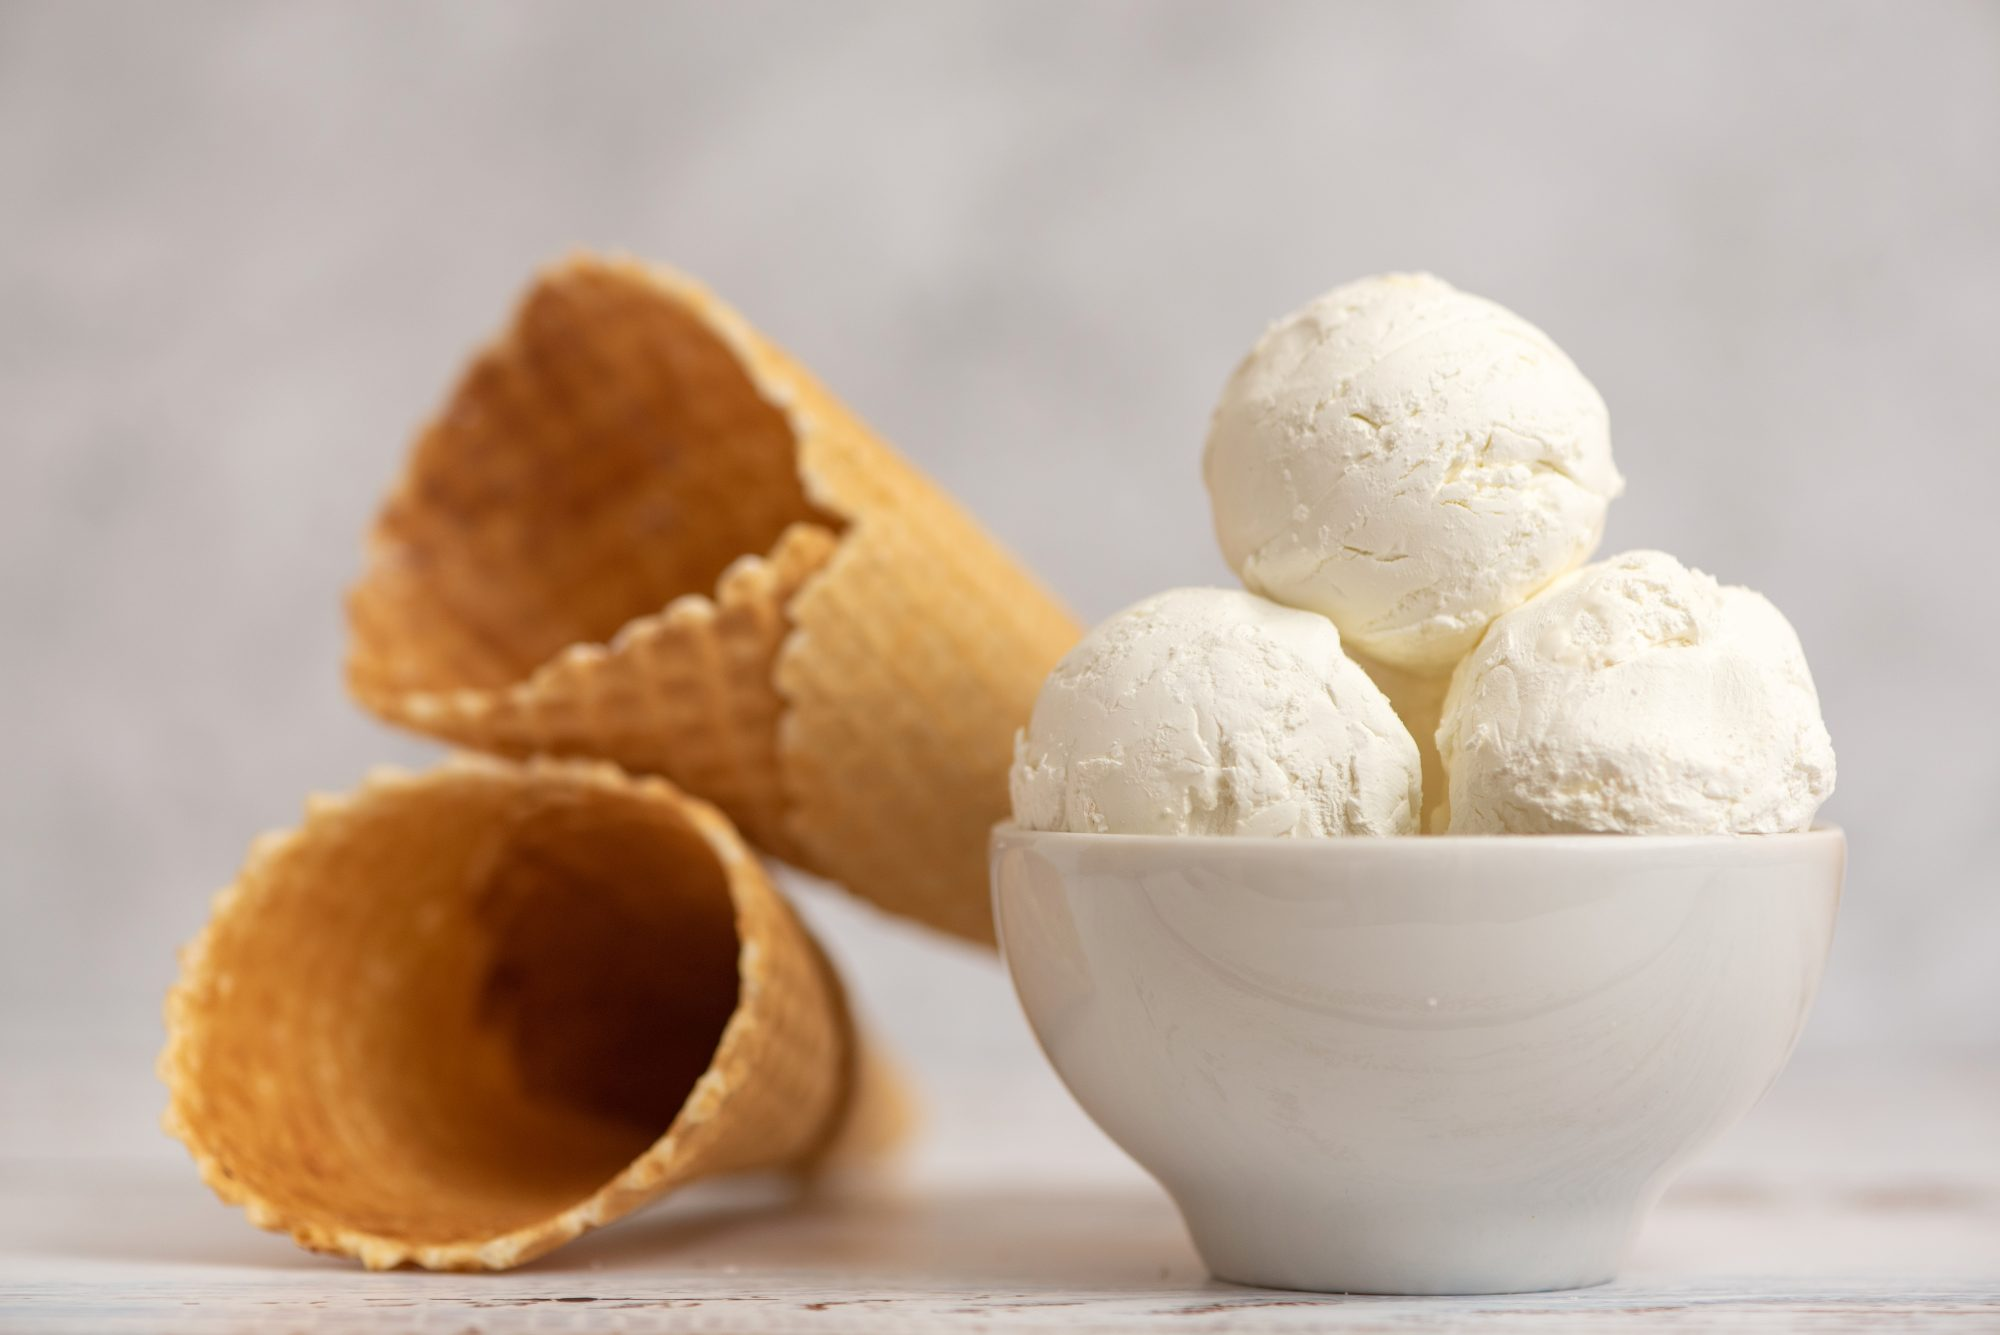 Bowl of vanilla ice cream and waffle cones on light background. Side view